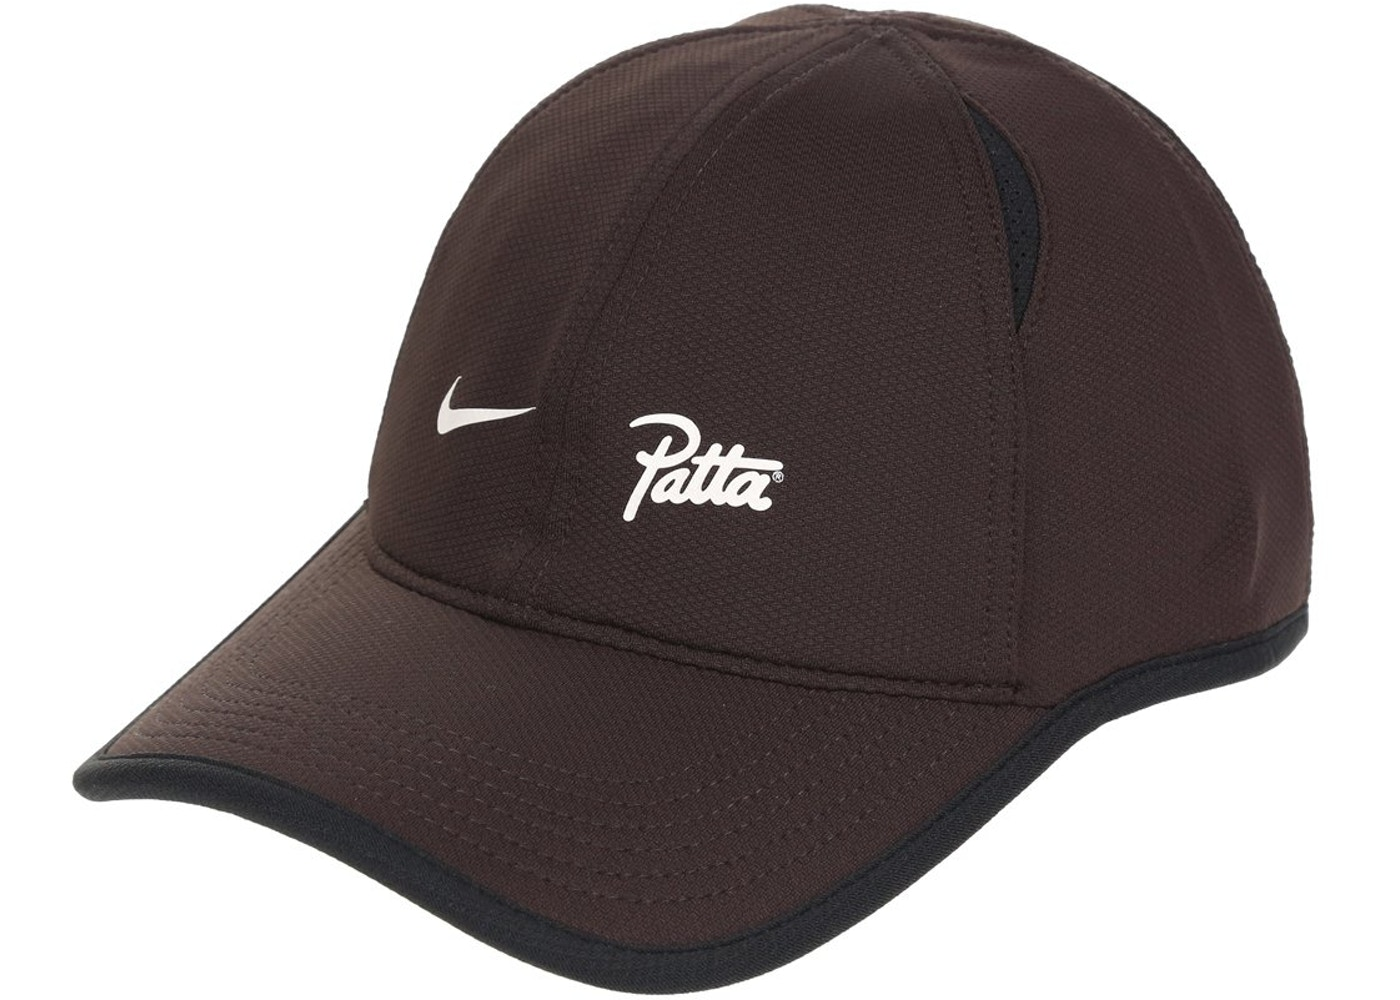 21e899269e Sell. or Ask. View All Bids. Nike NSW Patta Cap Velvet Brown